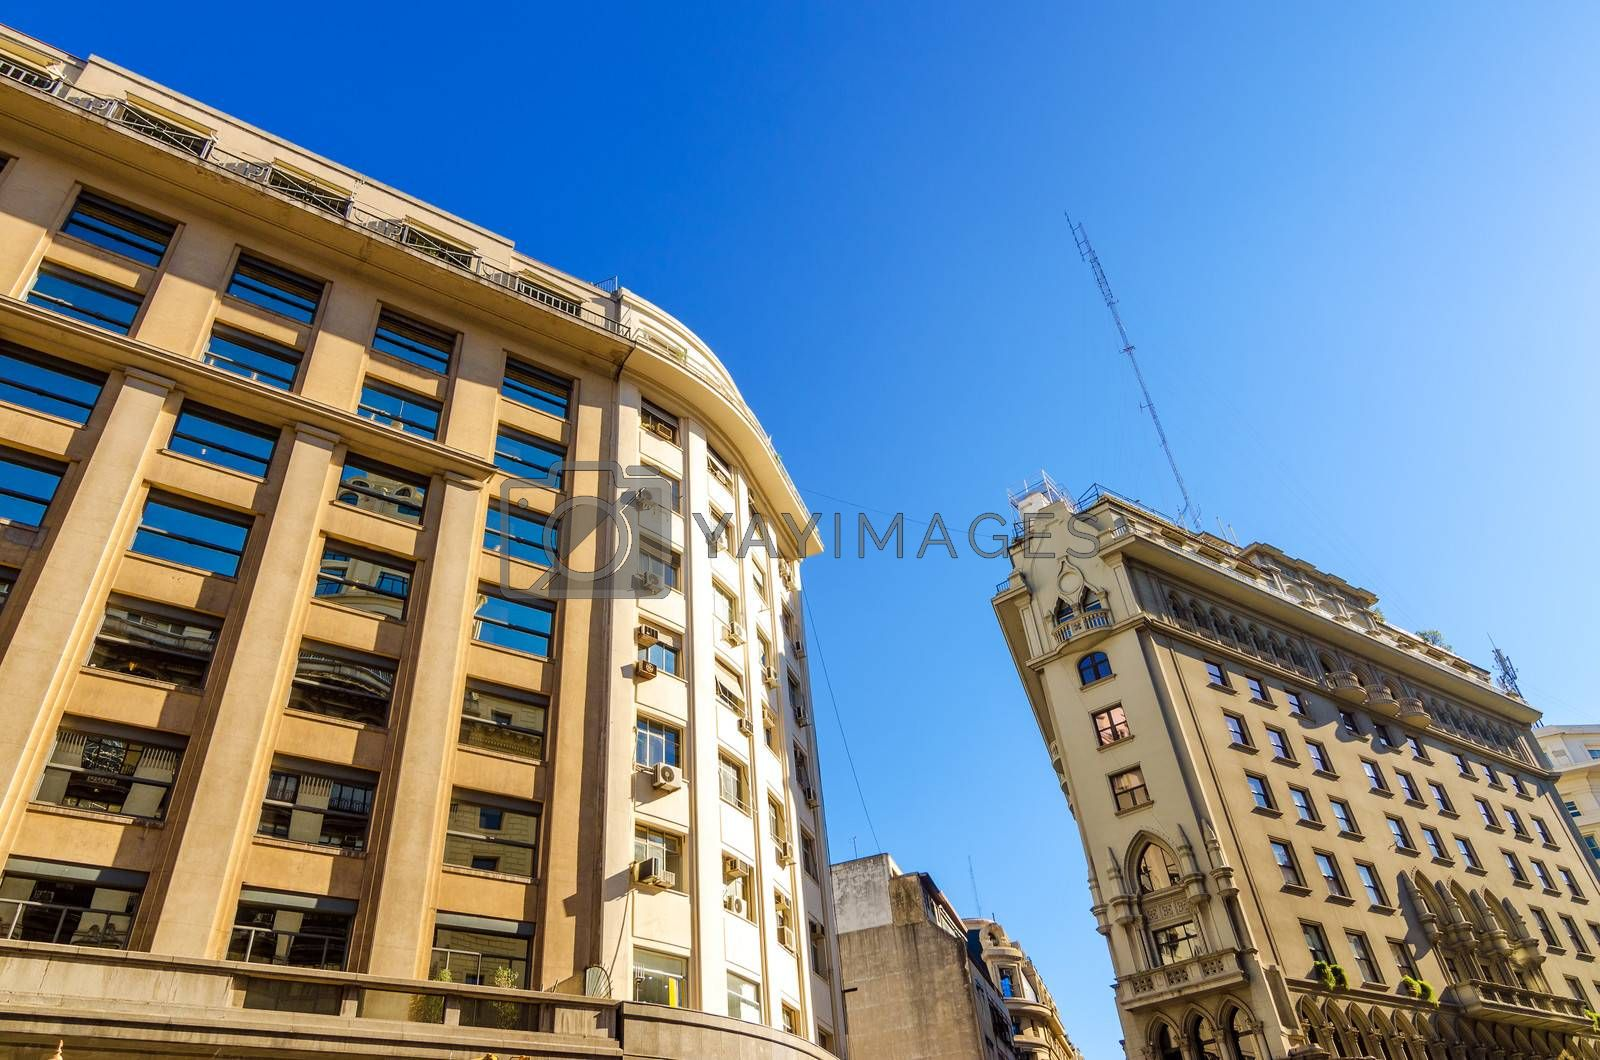 Old historic buildings in the center of Buenos Aires, Argentina